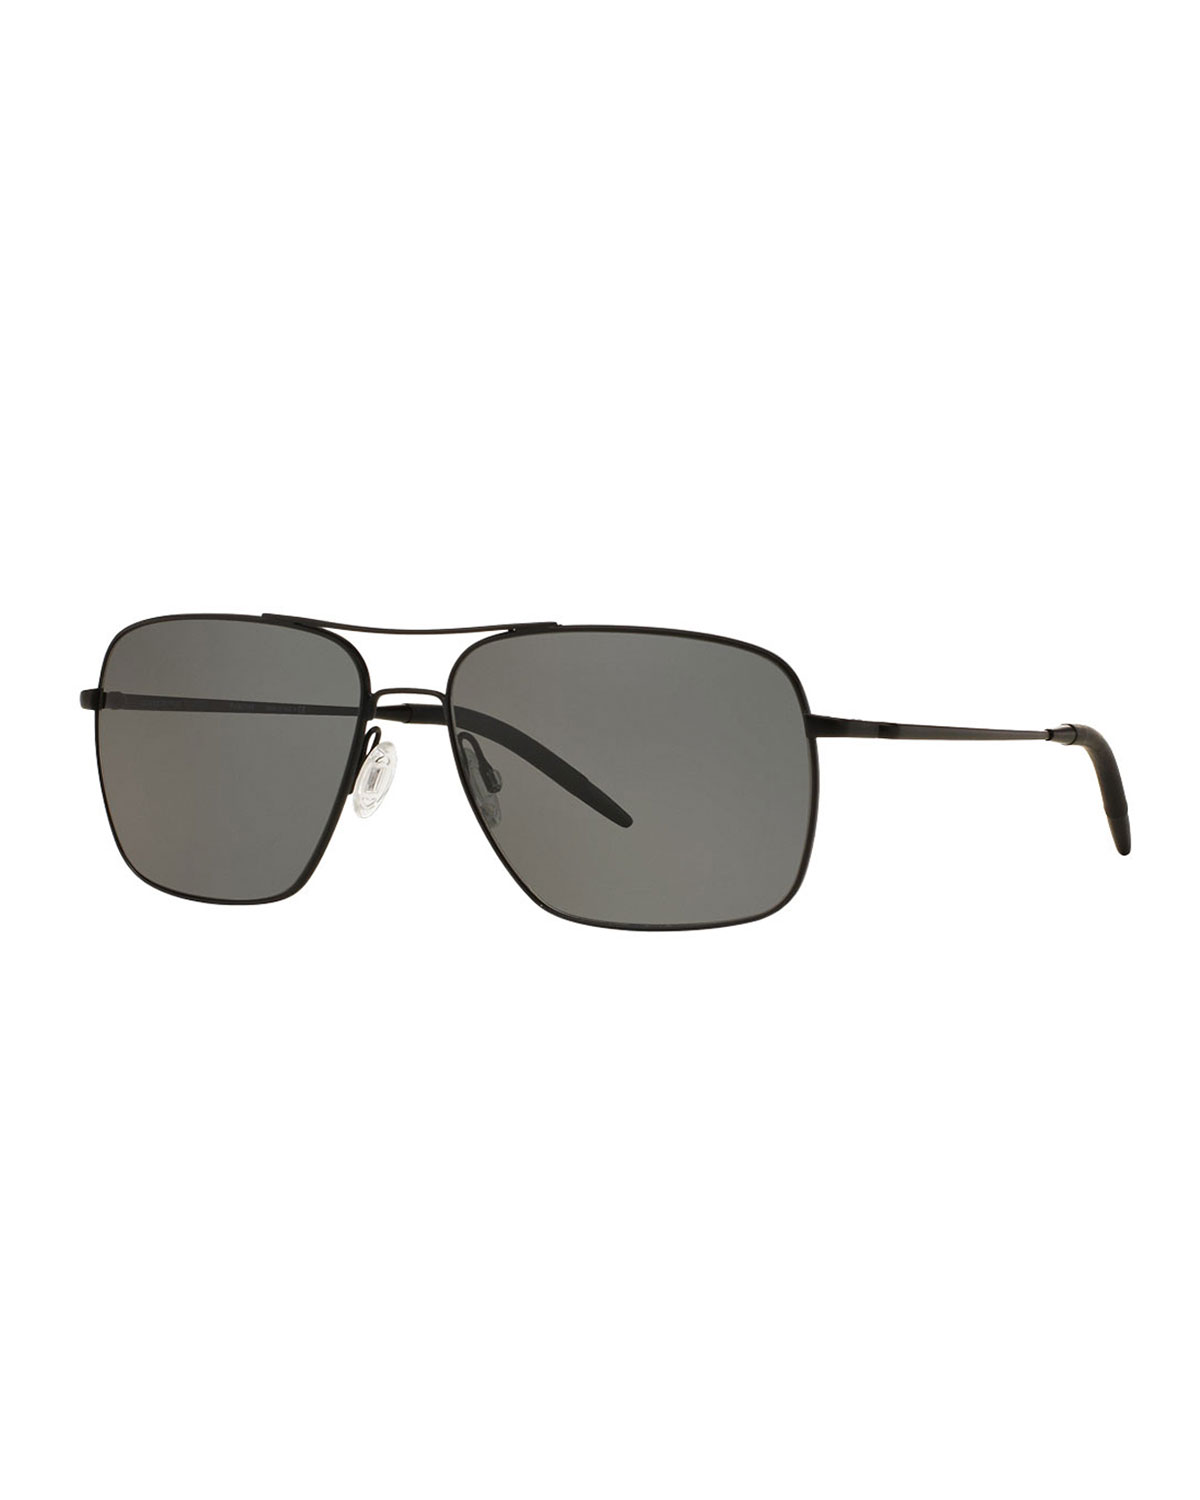 34aac5a8afc Oliver Peoples Clifton 58 Polarized Sunglasses